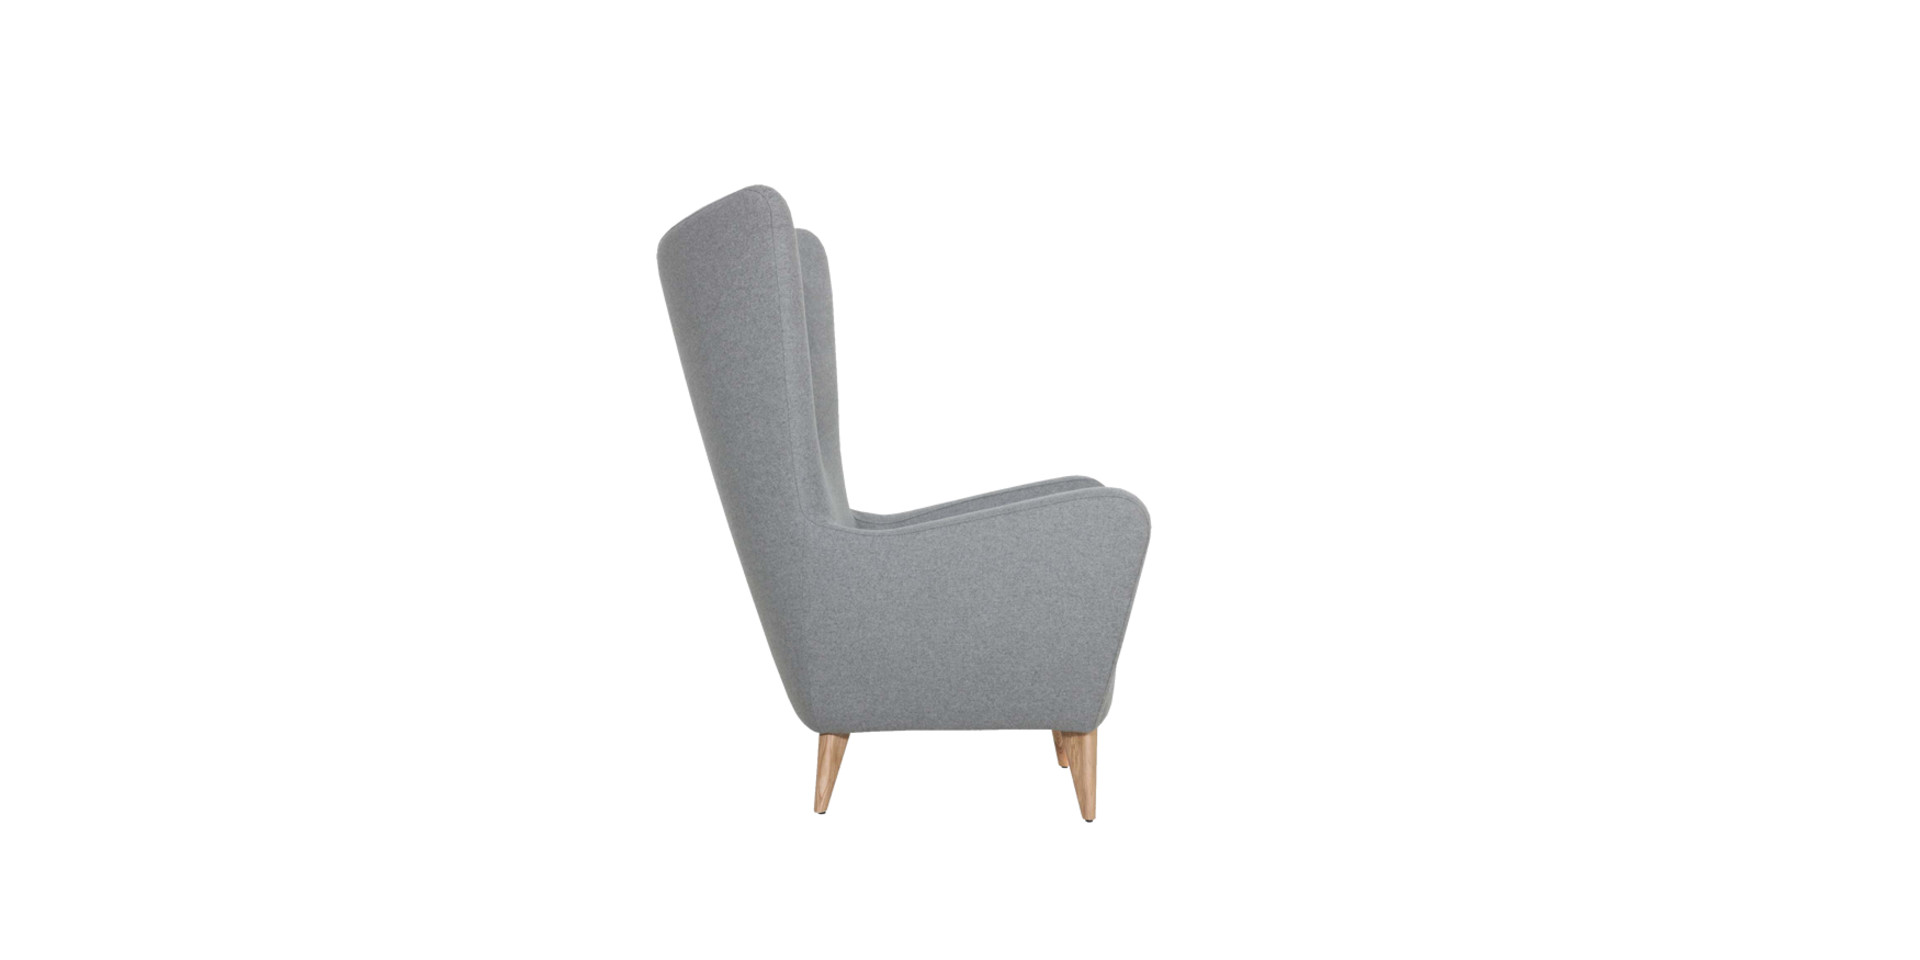 sits-kato-fauteuil-armchair_buttons_panno1000_light_grey_3